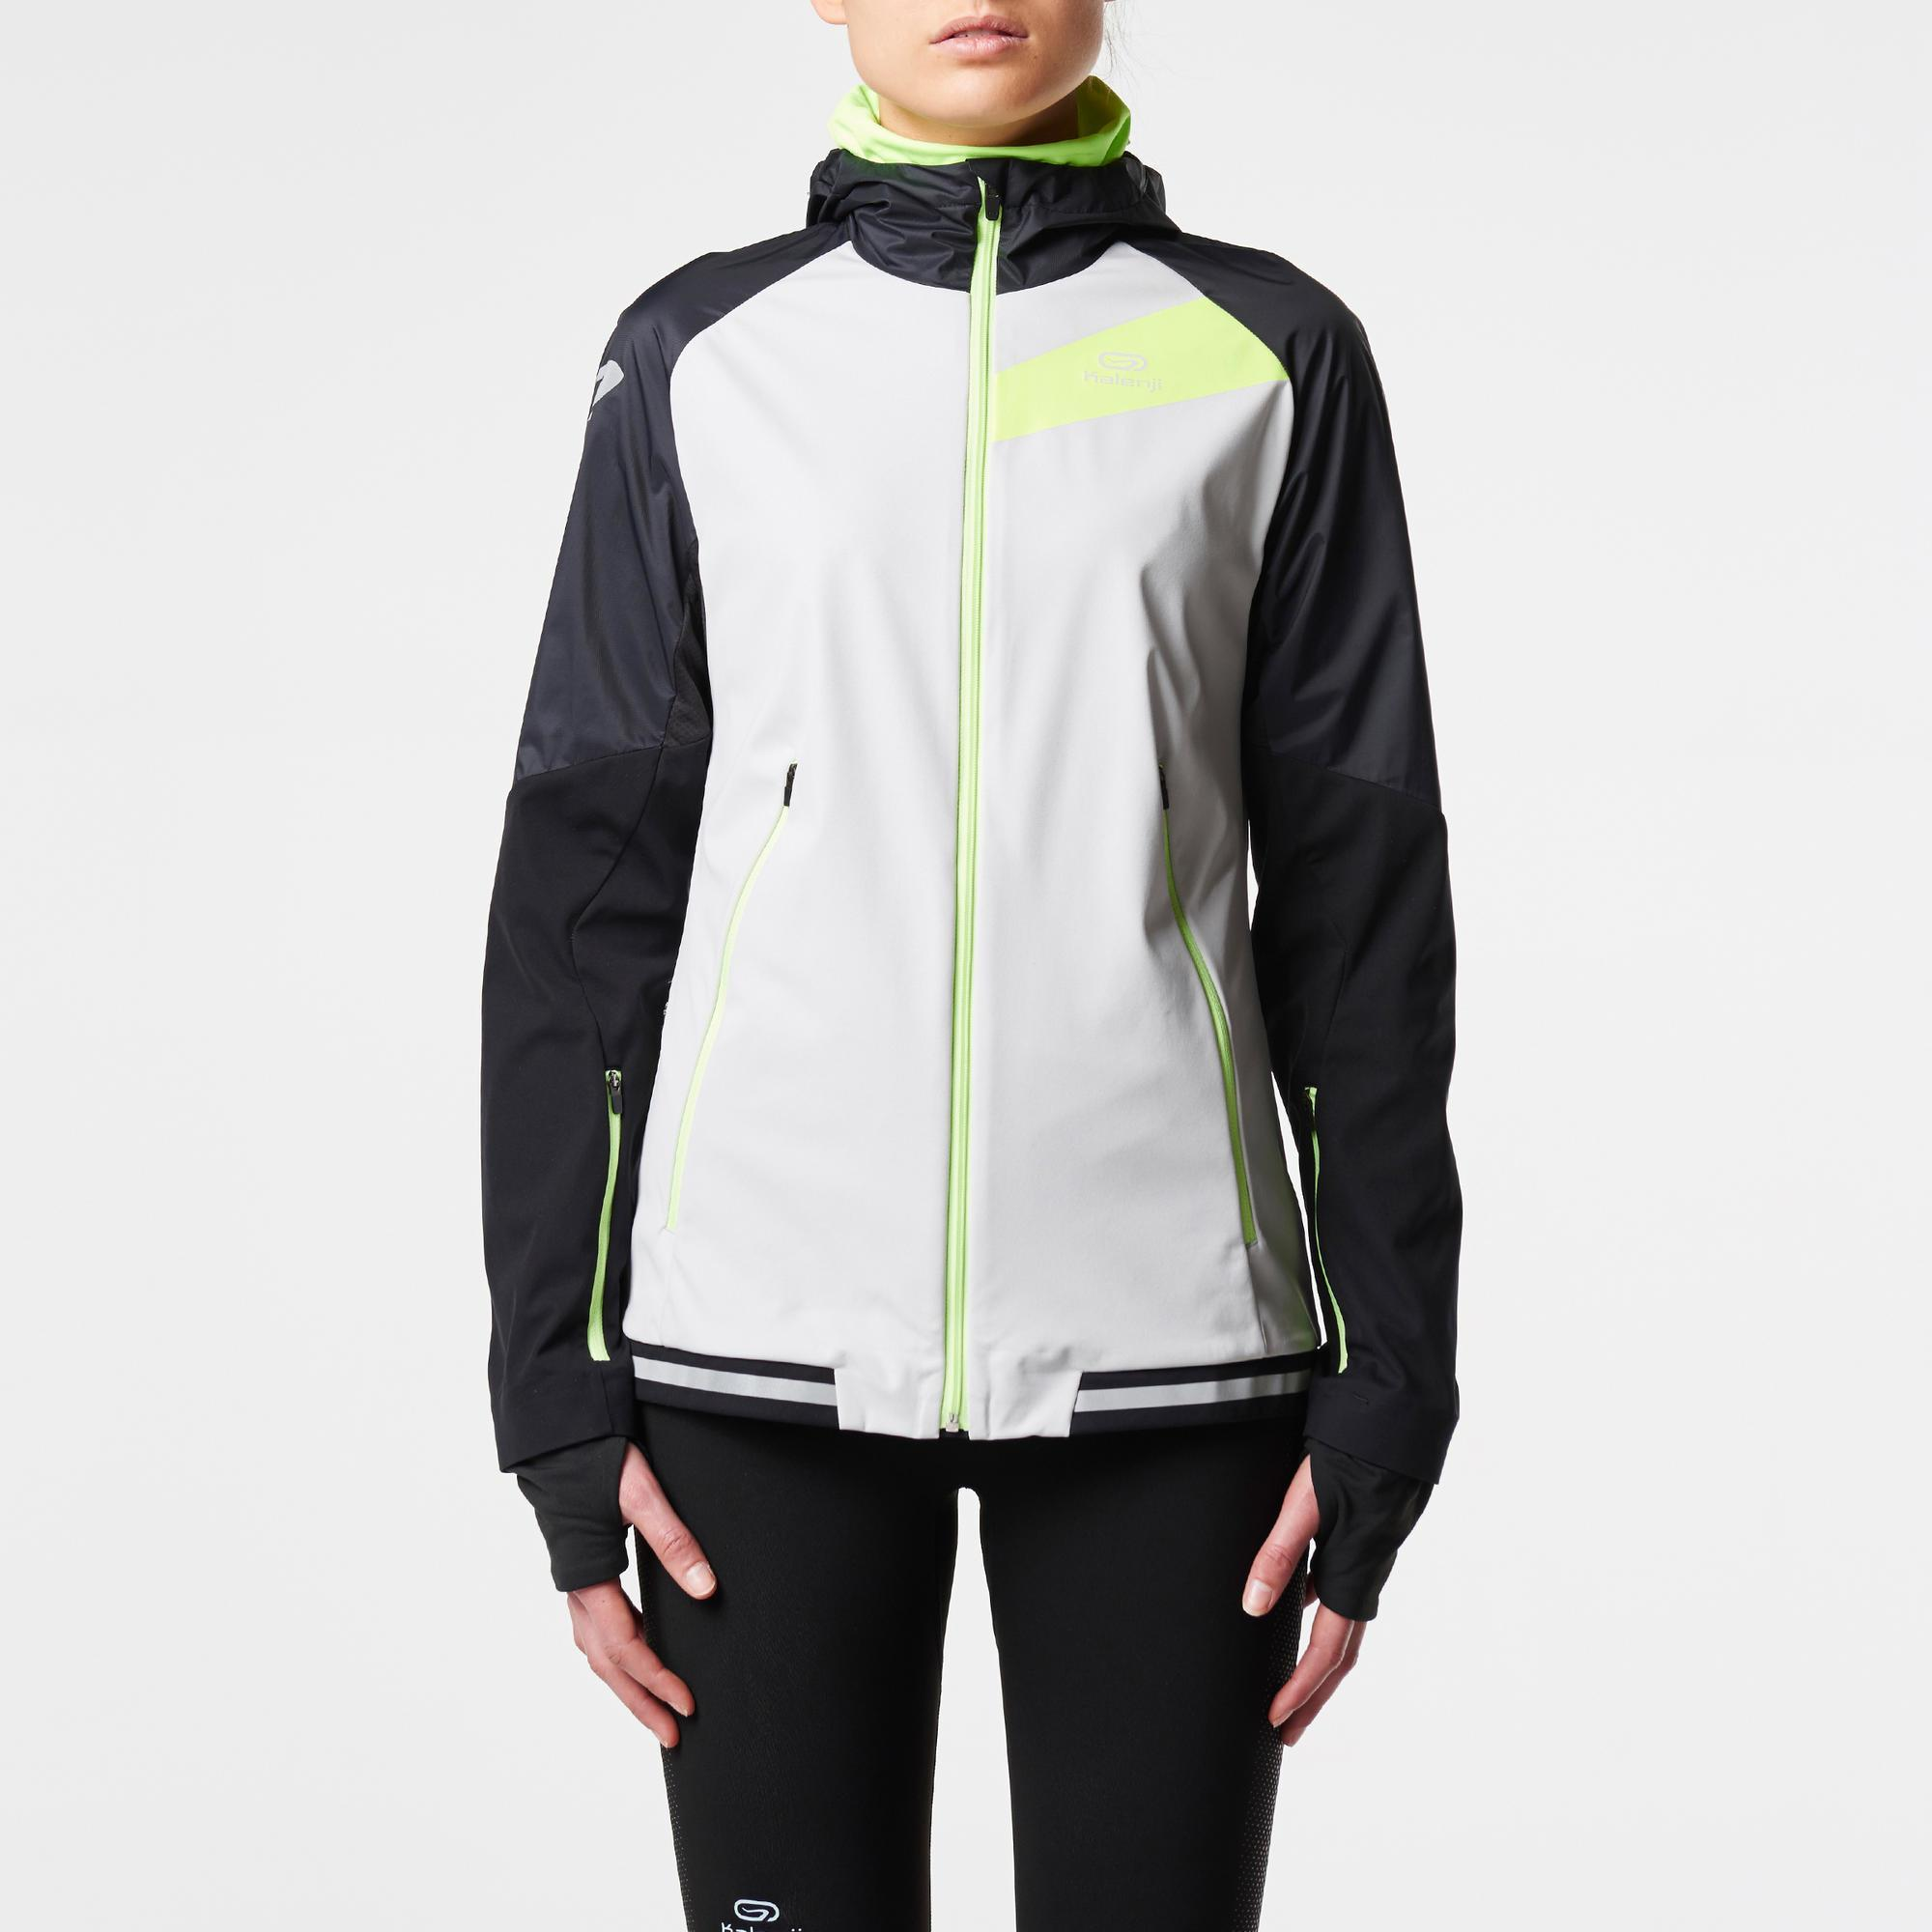 48bba489ff69 And Jacket Coats Running Women s Jackets Evolutiv Kalenji Kiprun HSxw8T